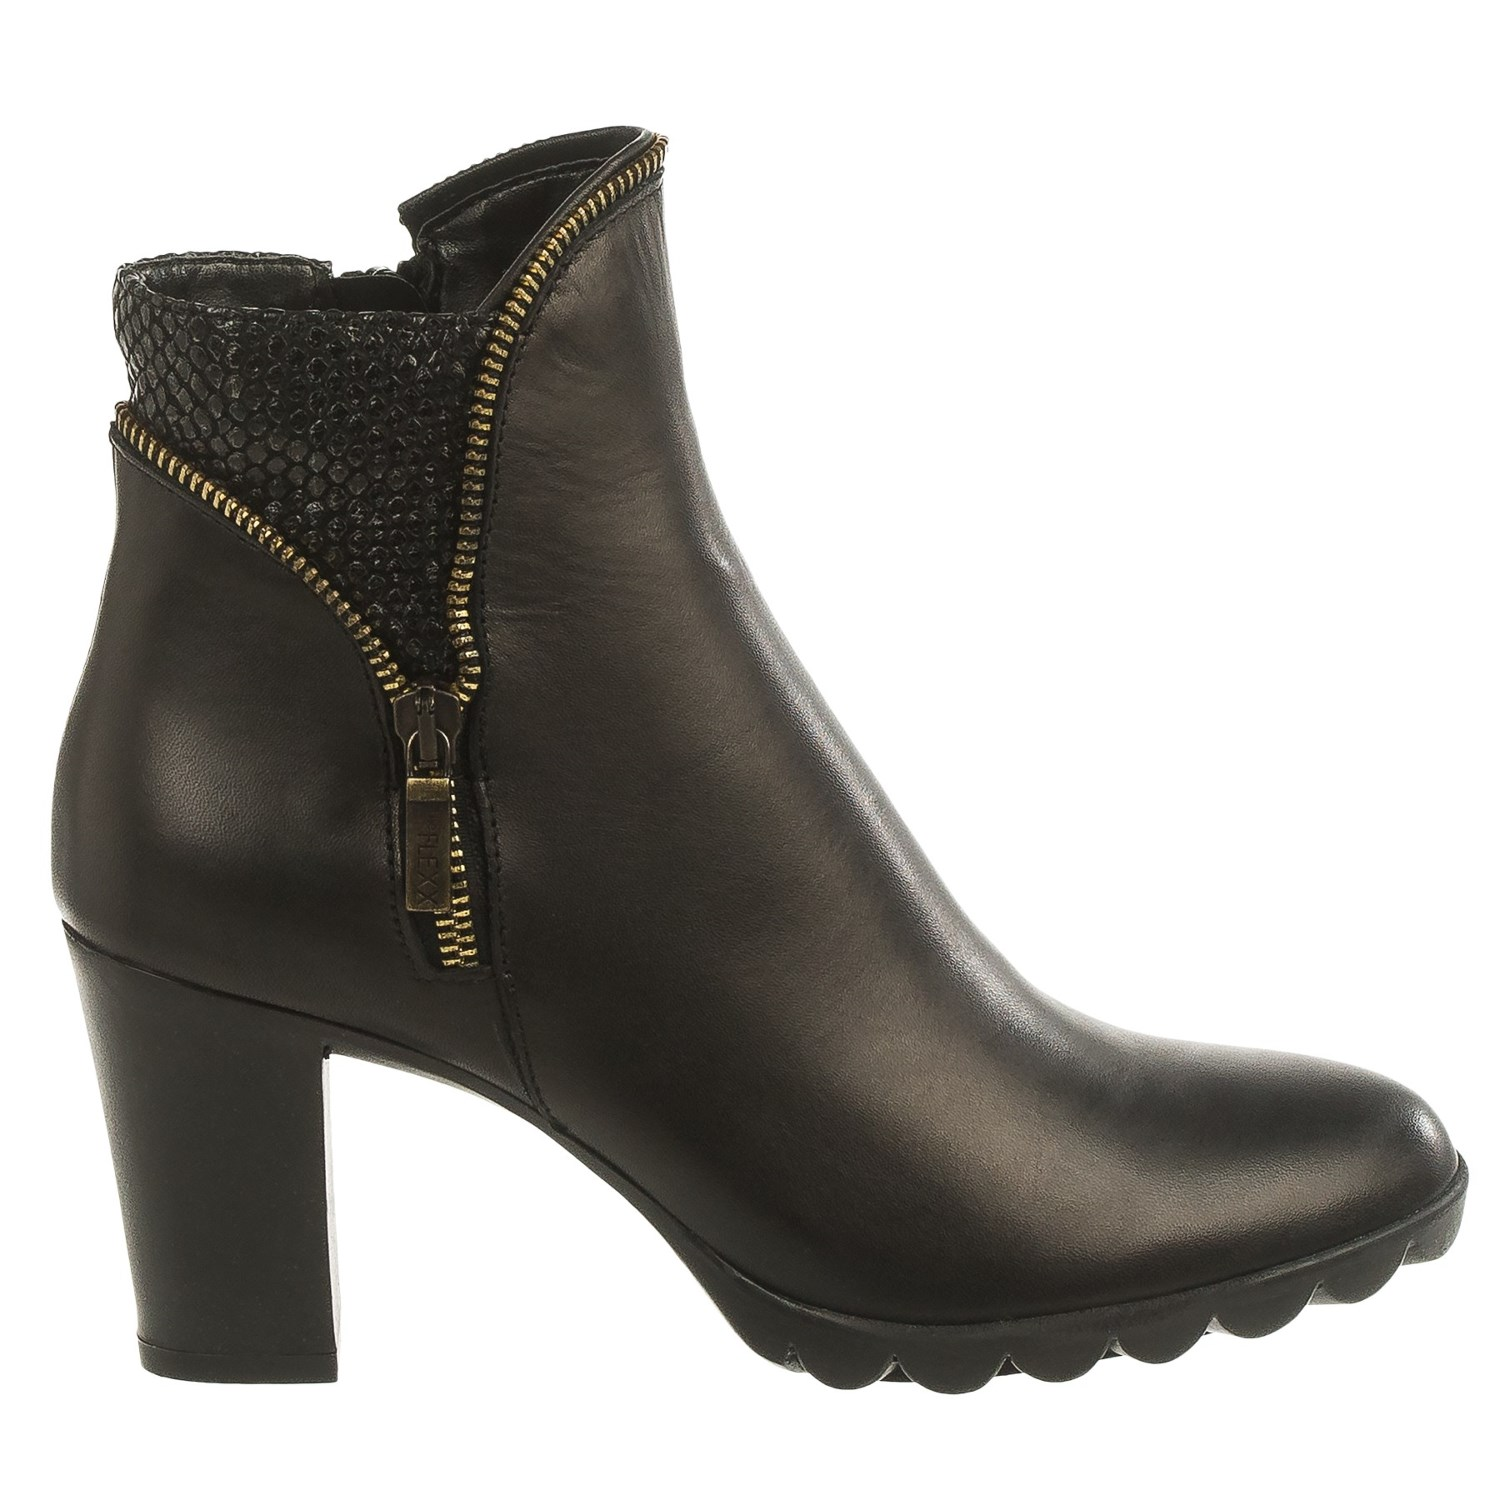 The Flexx Dip Body Ankle Boots (For Women) - Save 82%